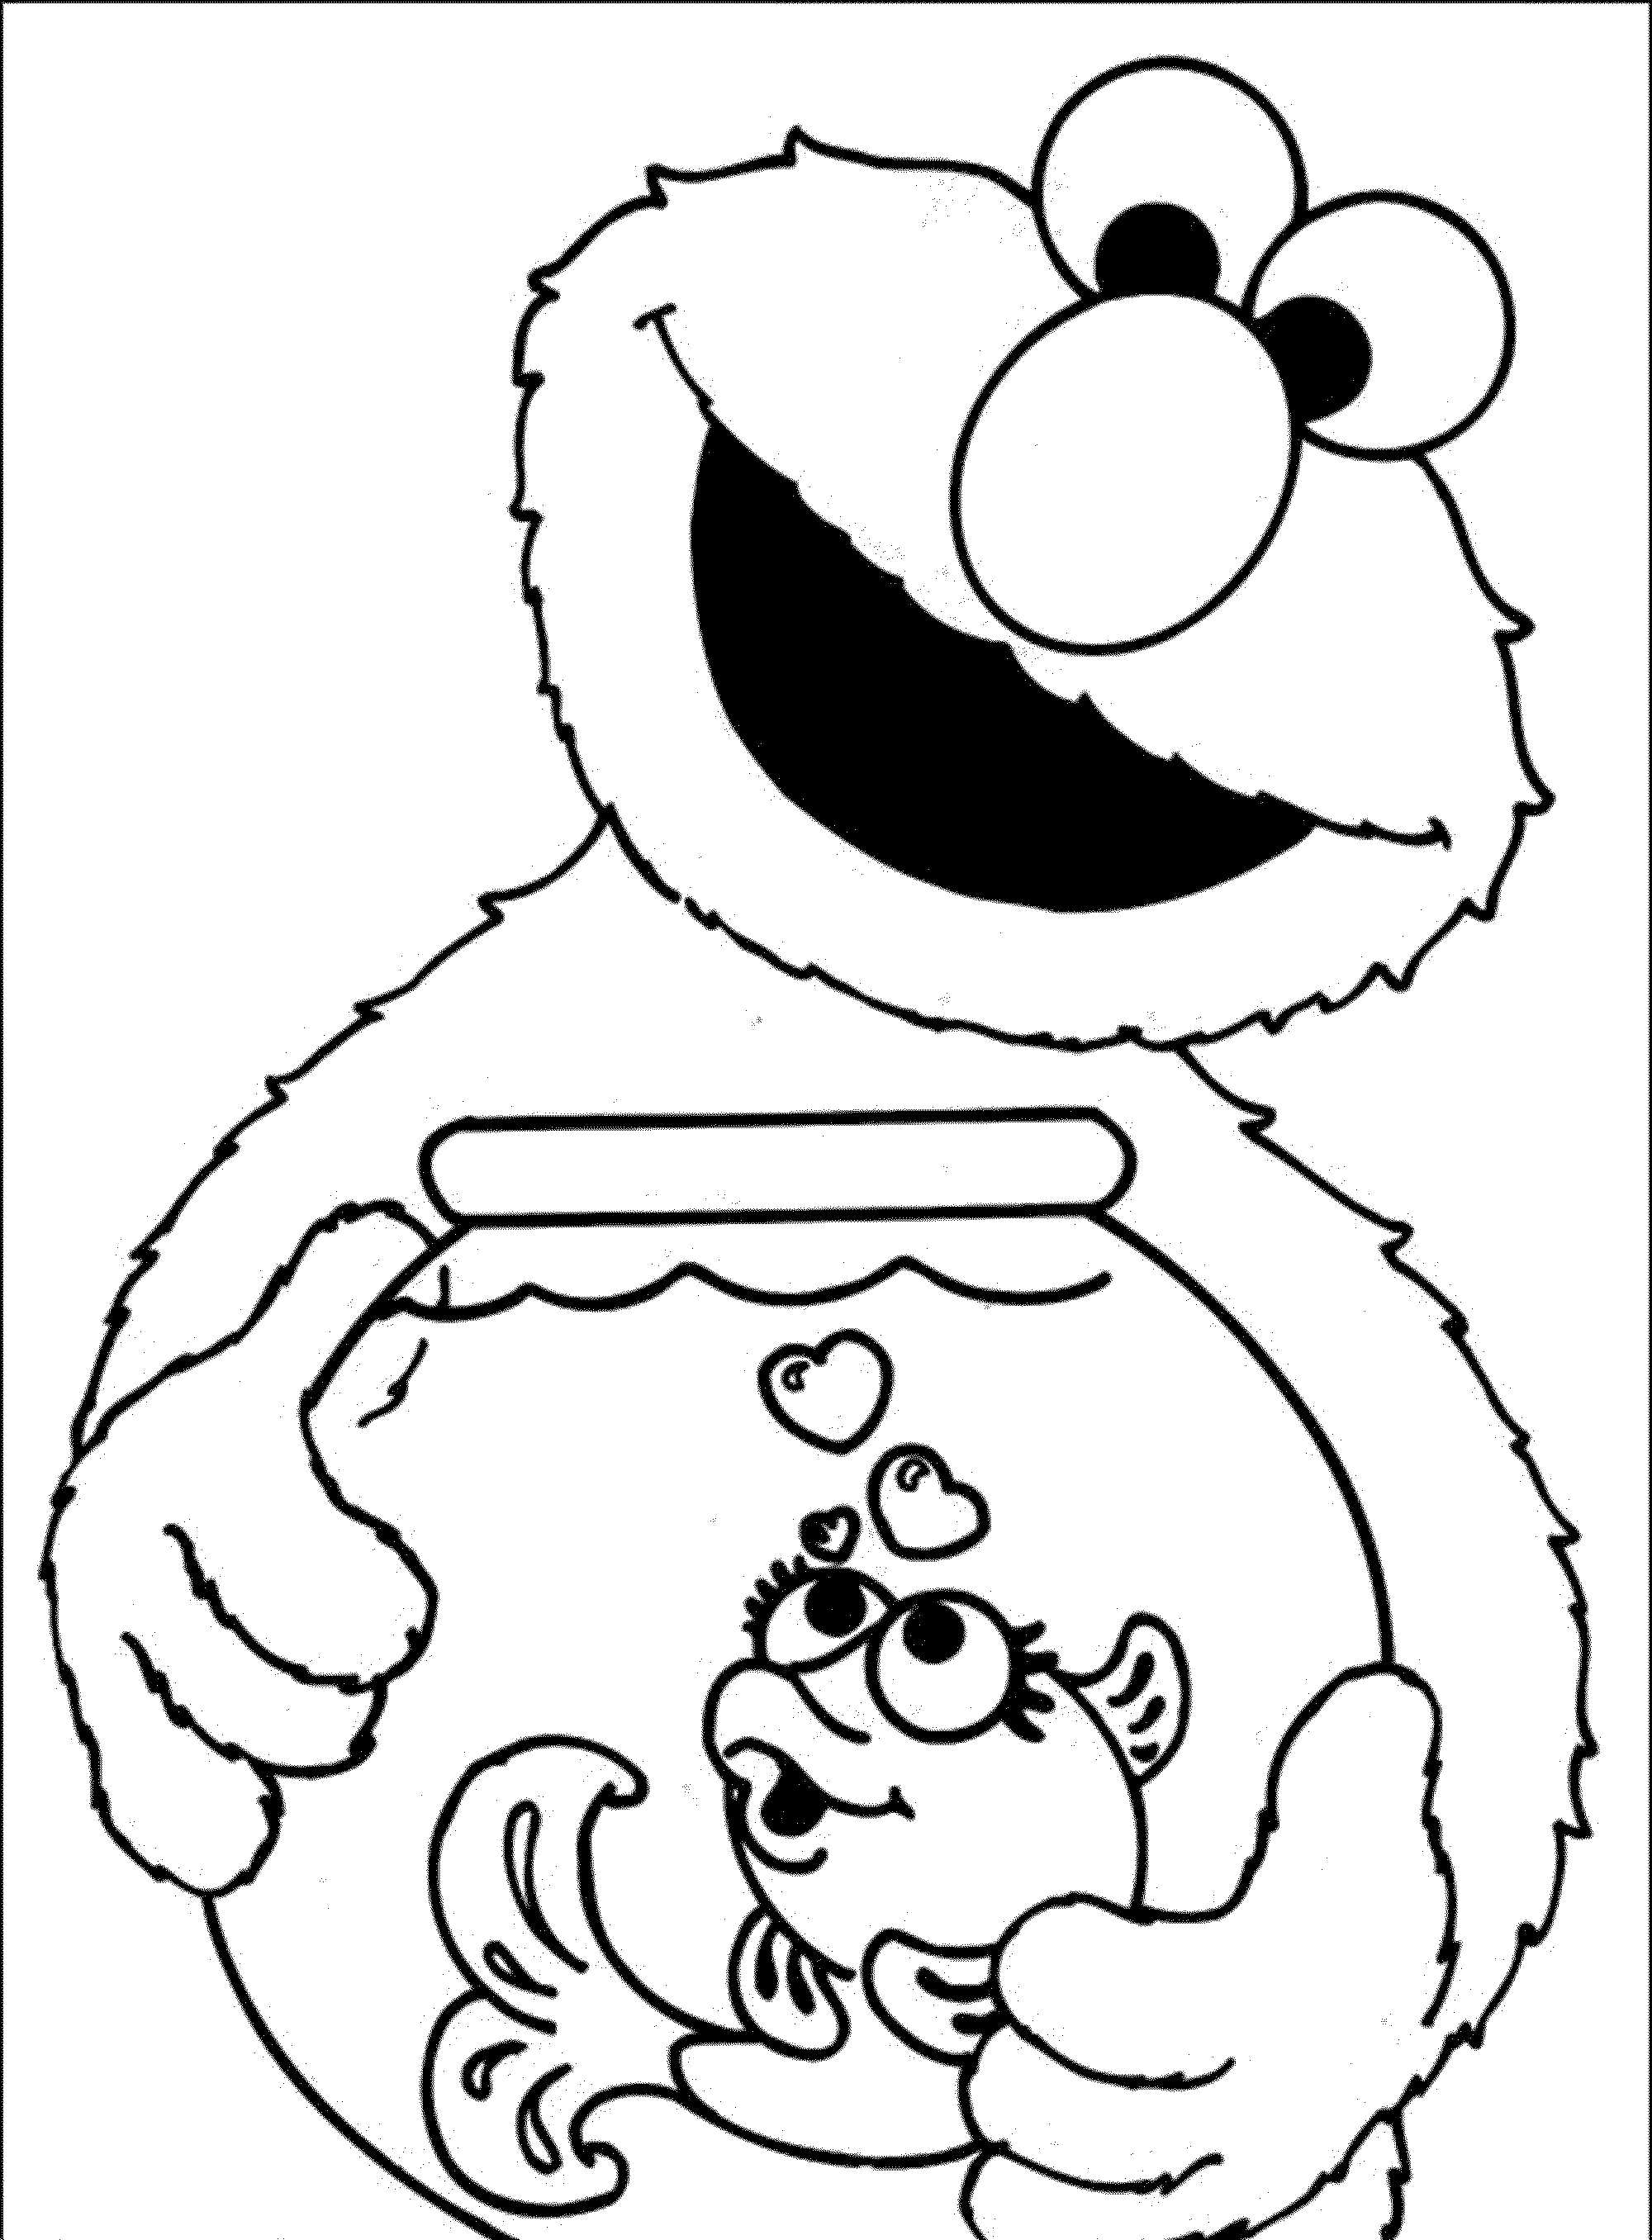 elmo and dorothy coloring pages - Printable Kids Colouring Pages